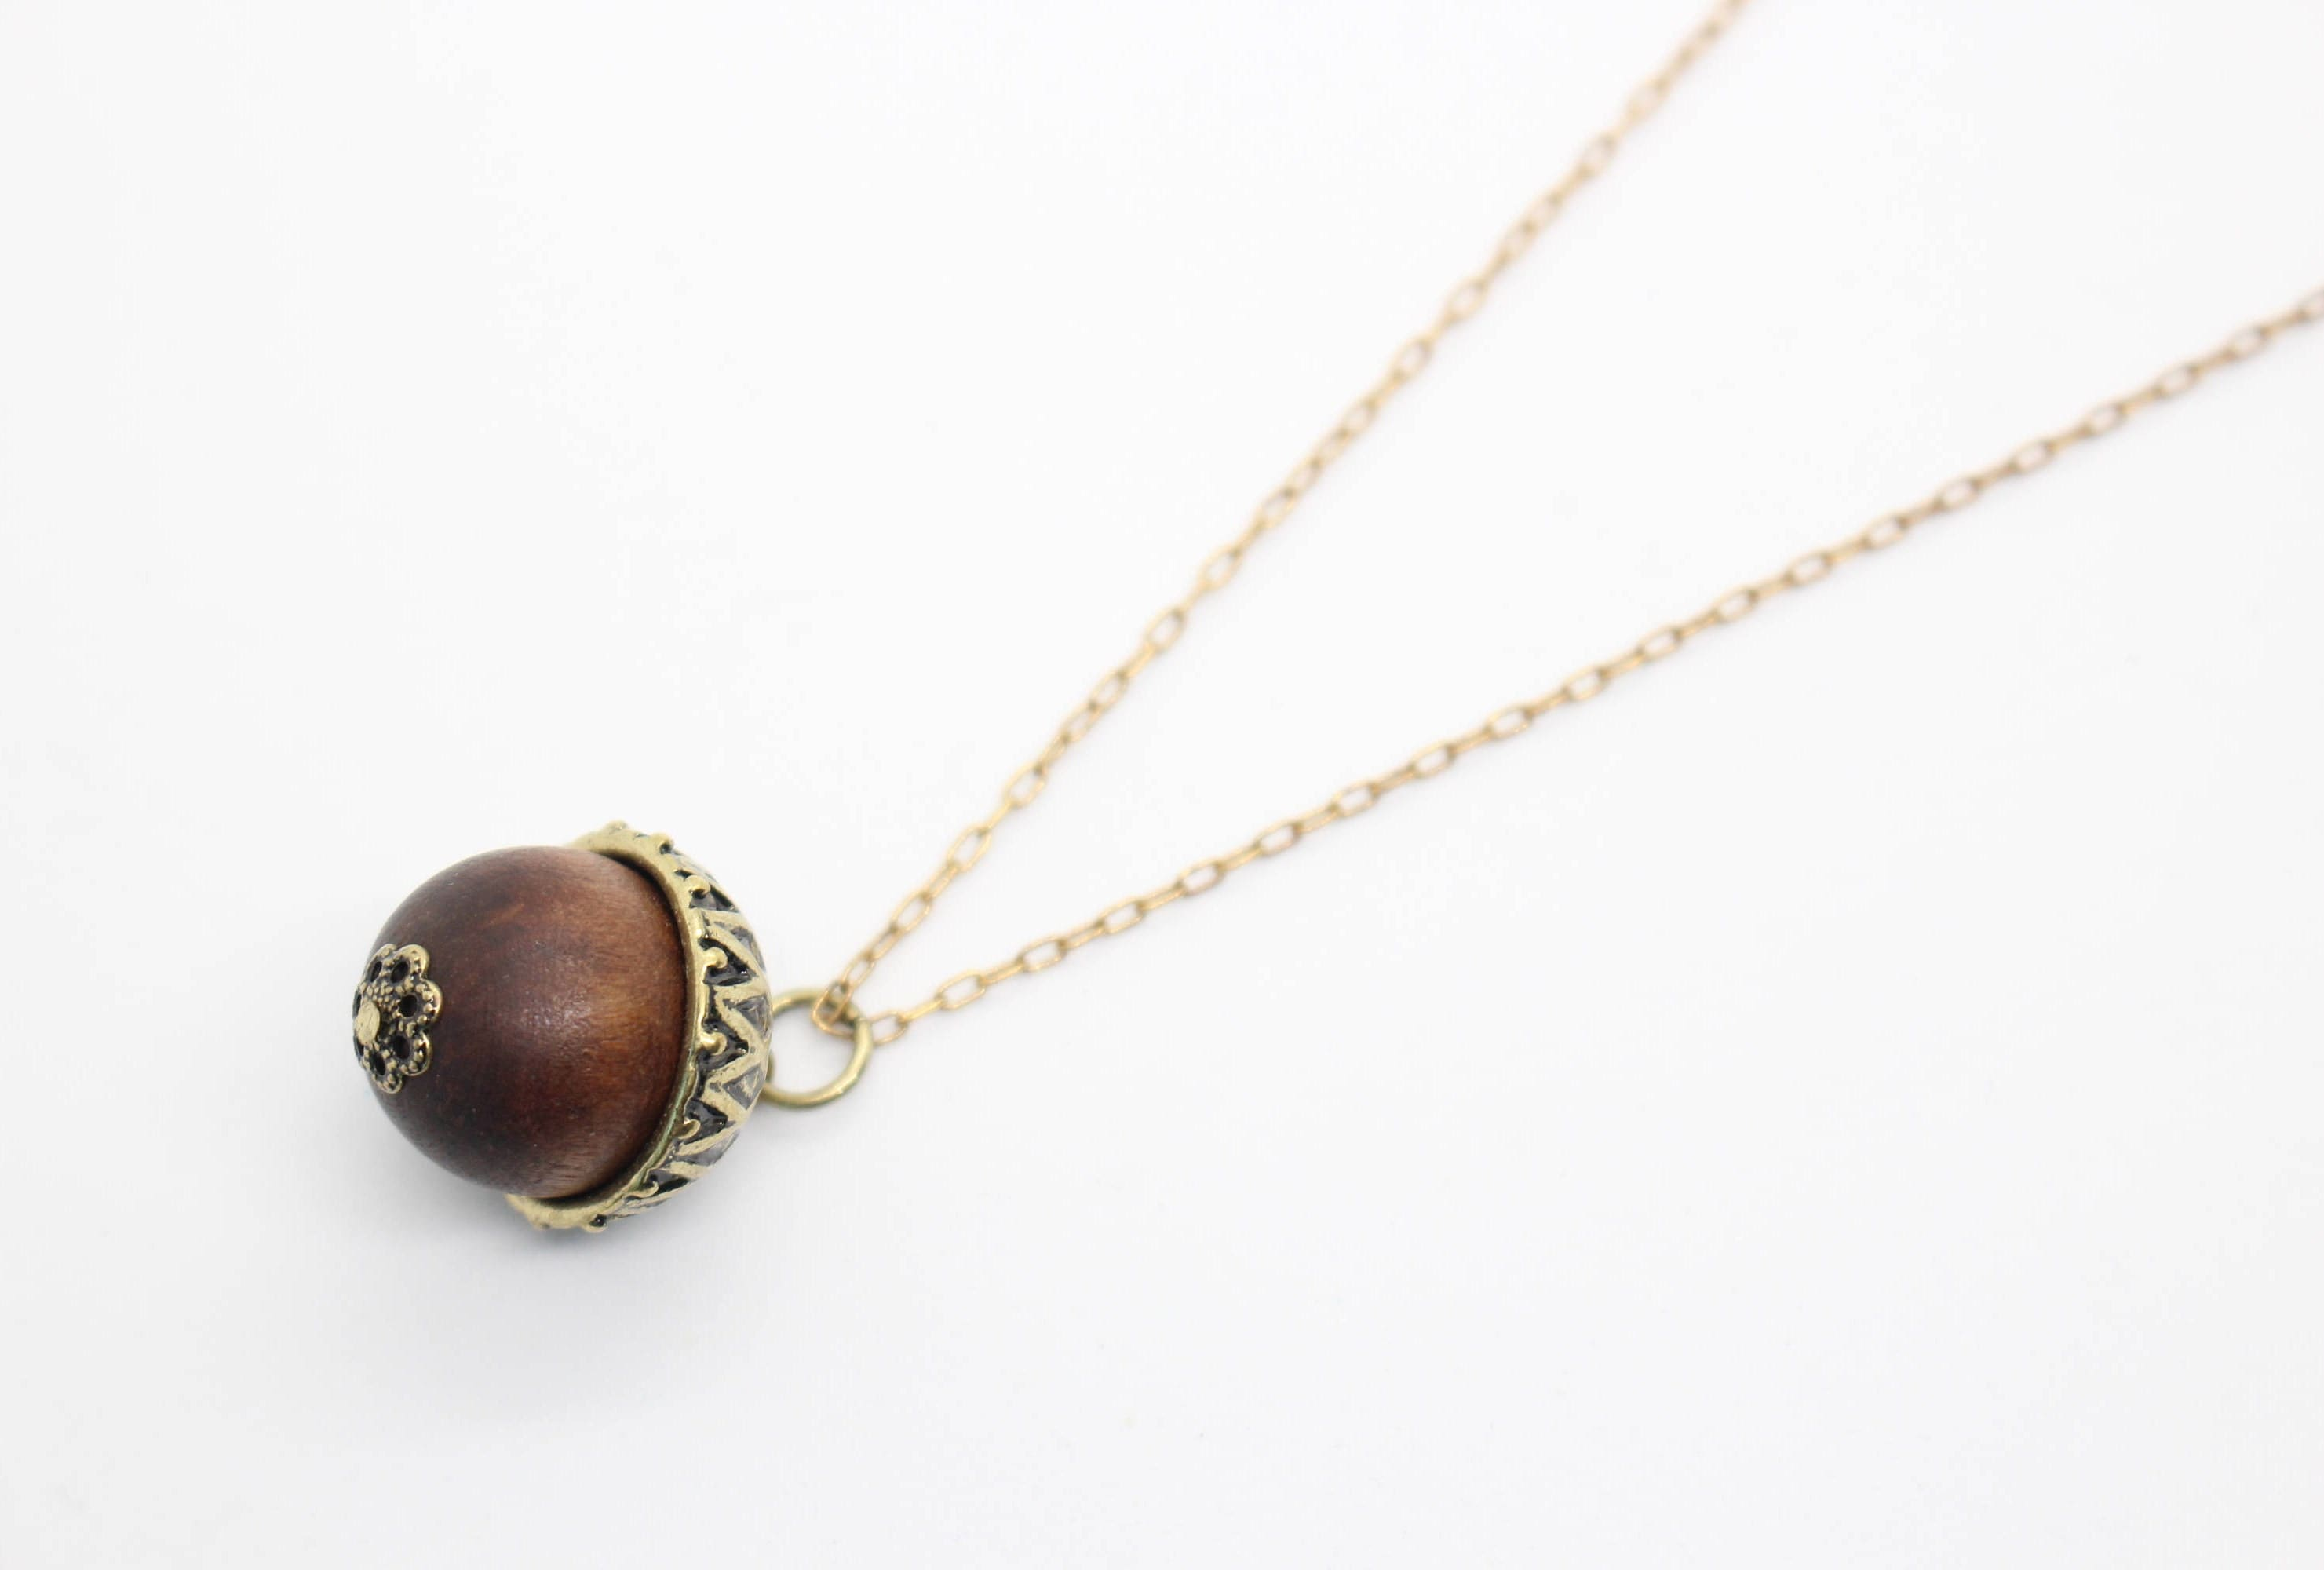 Acorn necklace acorn pendant fall necklace autumn necklace acorn necklace acorn pendant fall necklace autumn necklace fall jewelry autumn jewelry acorn jewelry wooden necklace antique brass mozeypictures Image collections